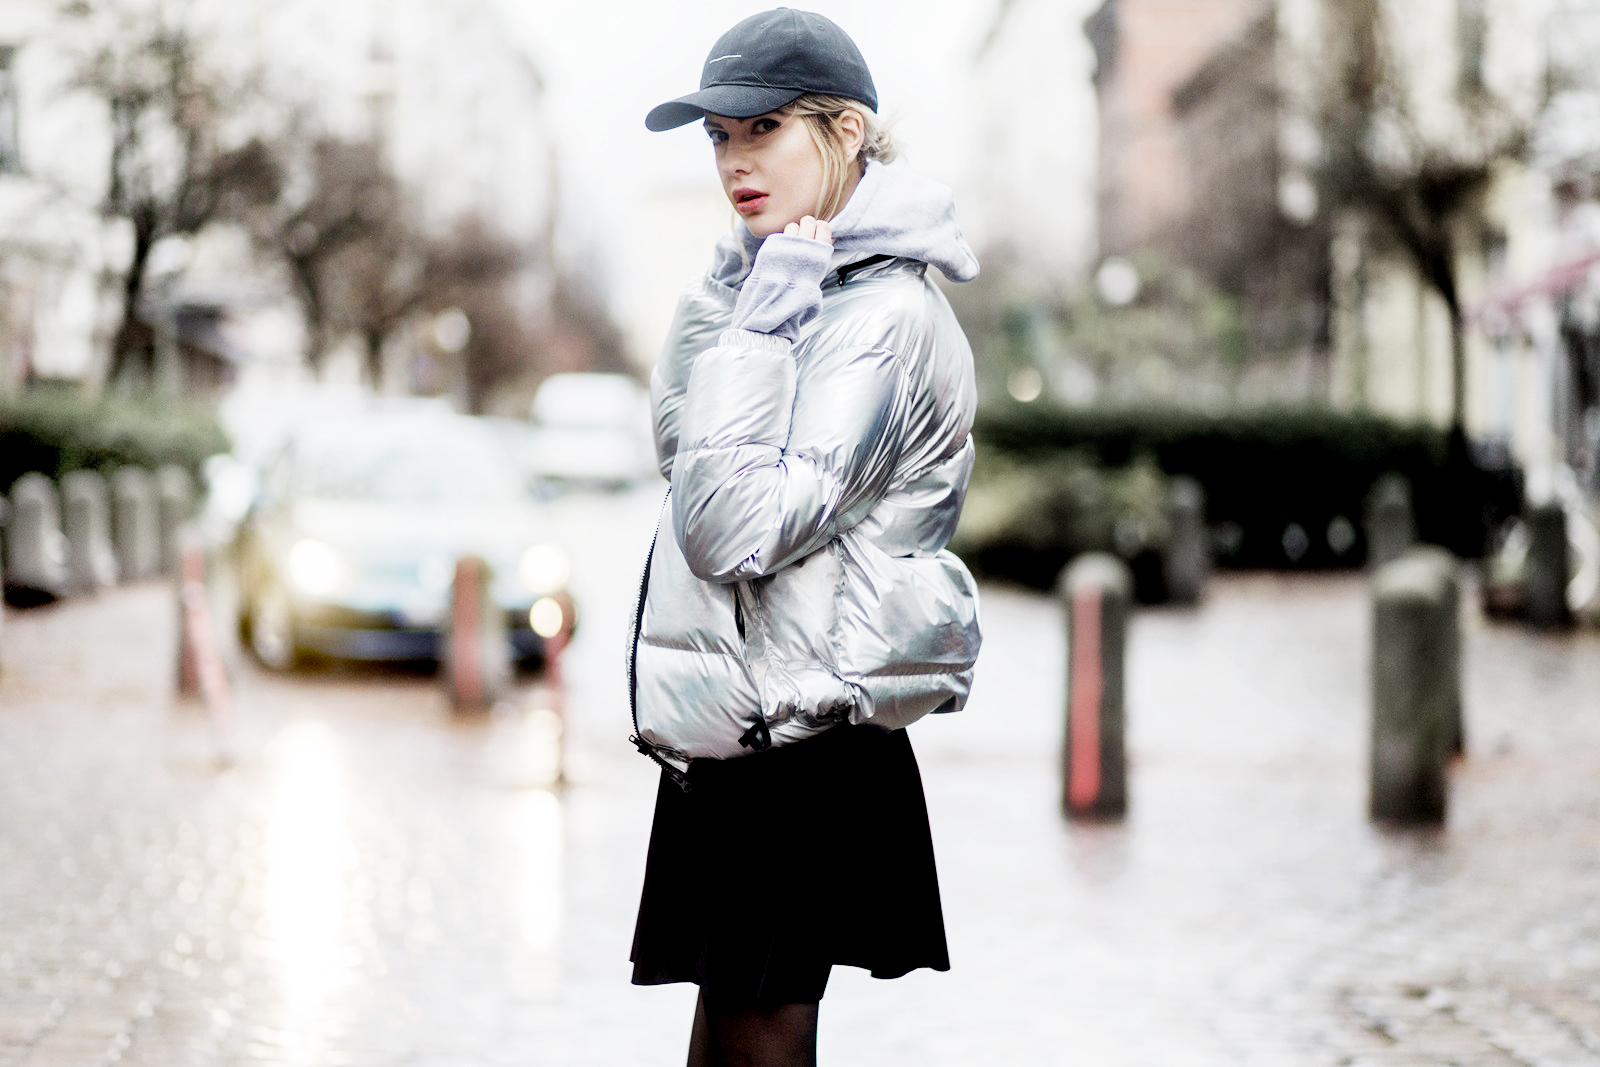 BERLIN, GERMANY - DECEMBER 2: Ebba Zingmark (fashion blogger) wearing a silver down feather jacket from Bixtol, a grey hoody and black cap from thatboii, a black velvet mini skirt nobodys child, H&M tights on December 2, 2016 in Berlin, Germany. (Photo by Christian Vierig/Getty Images) *** Local Caption *** Ebba Zingmark